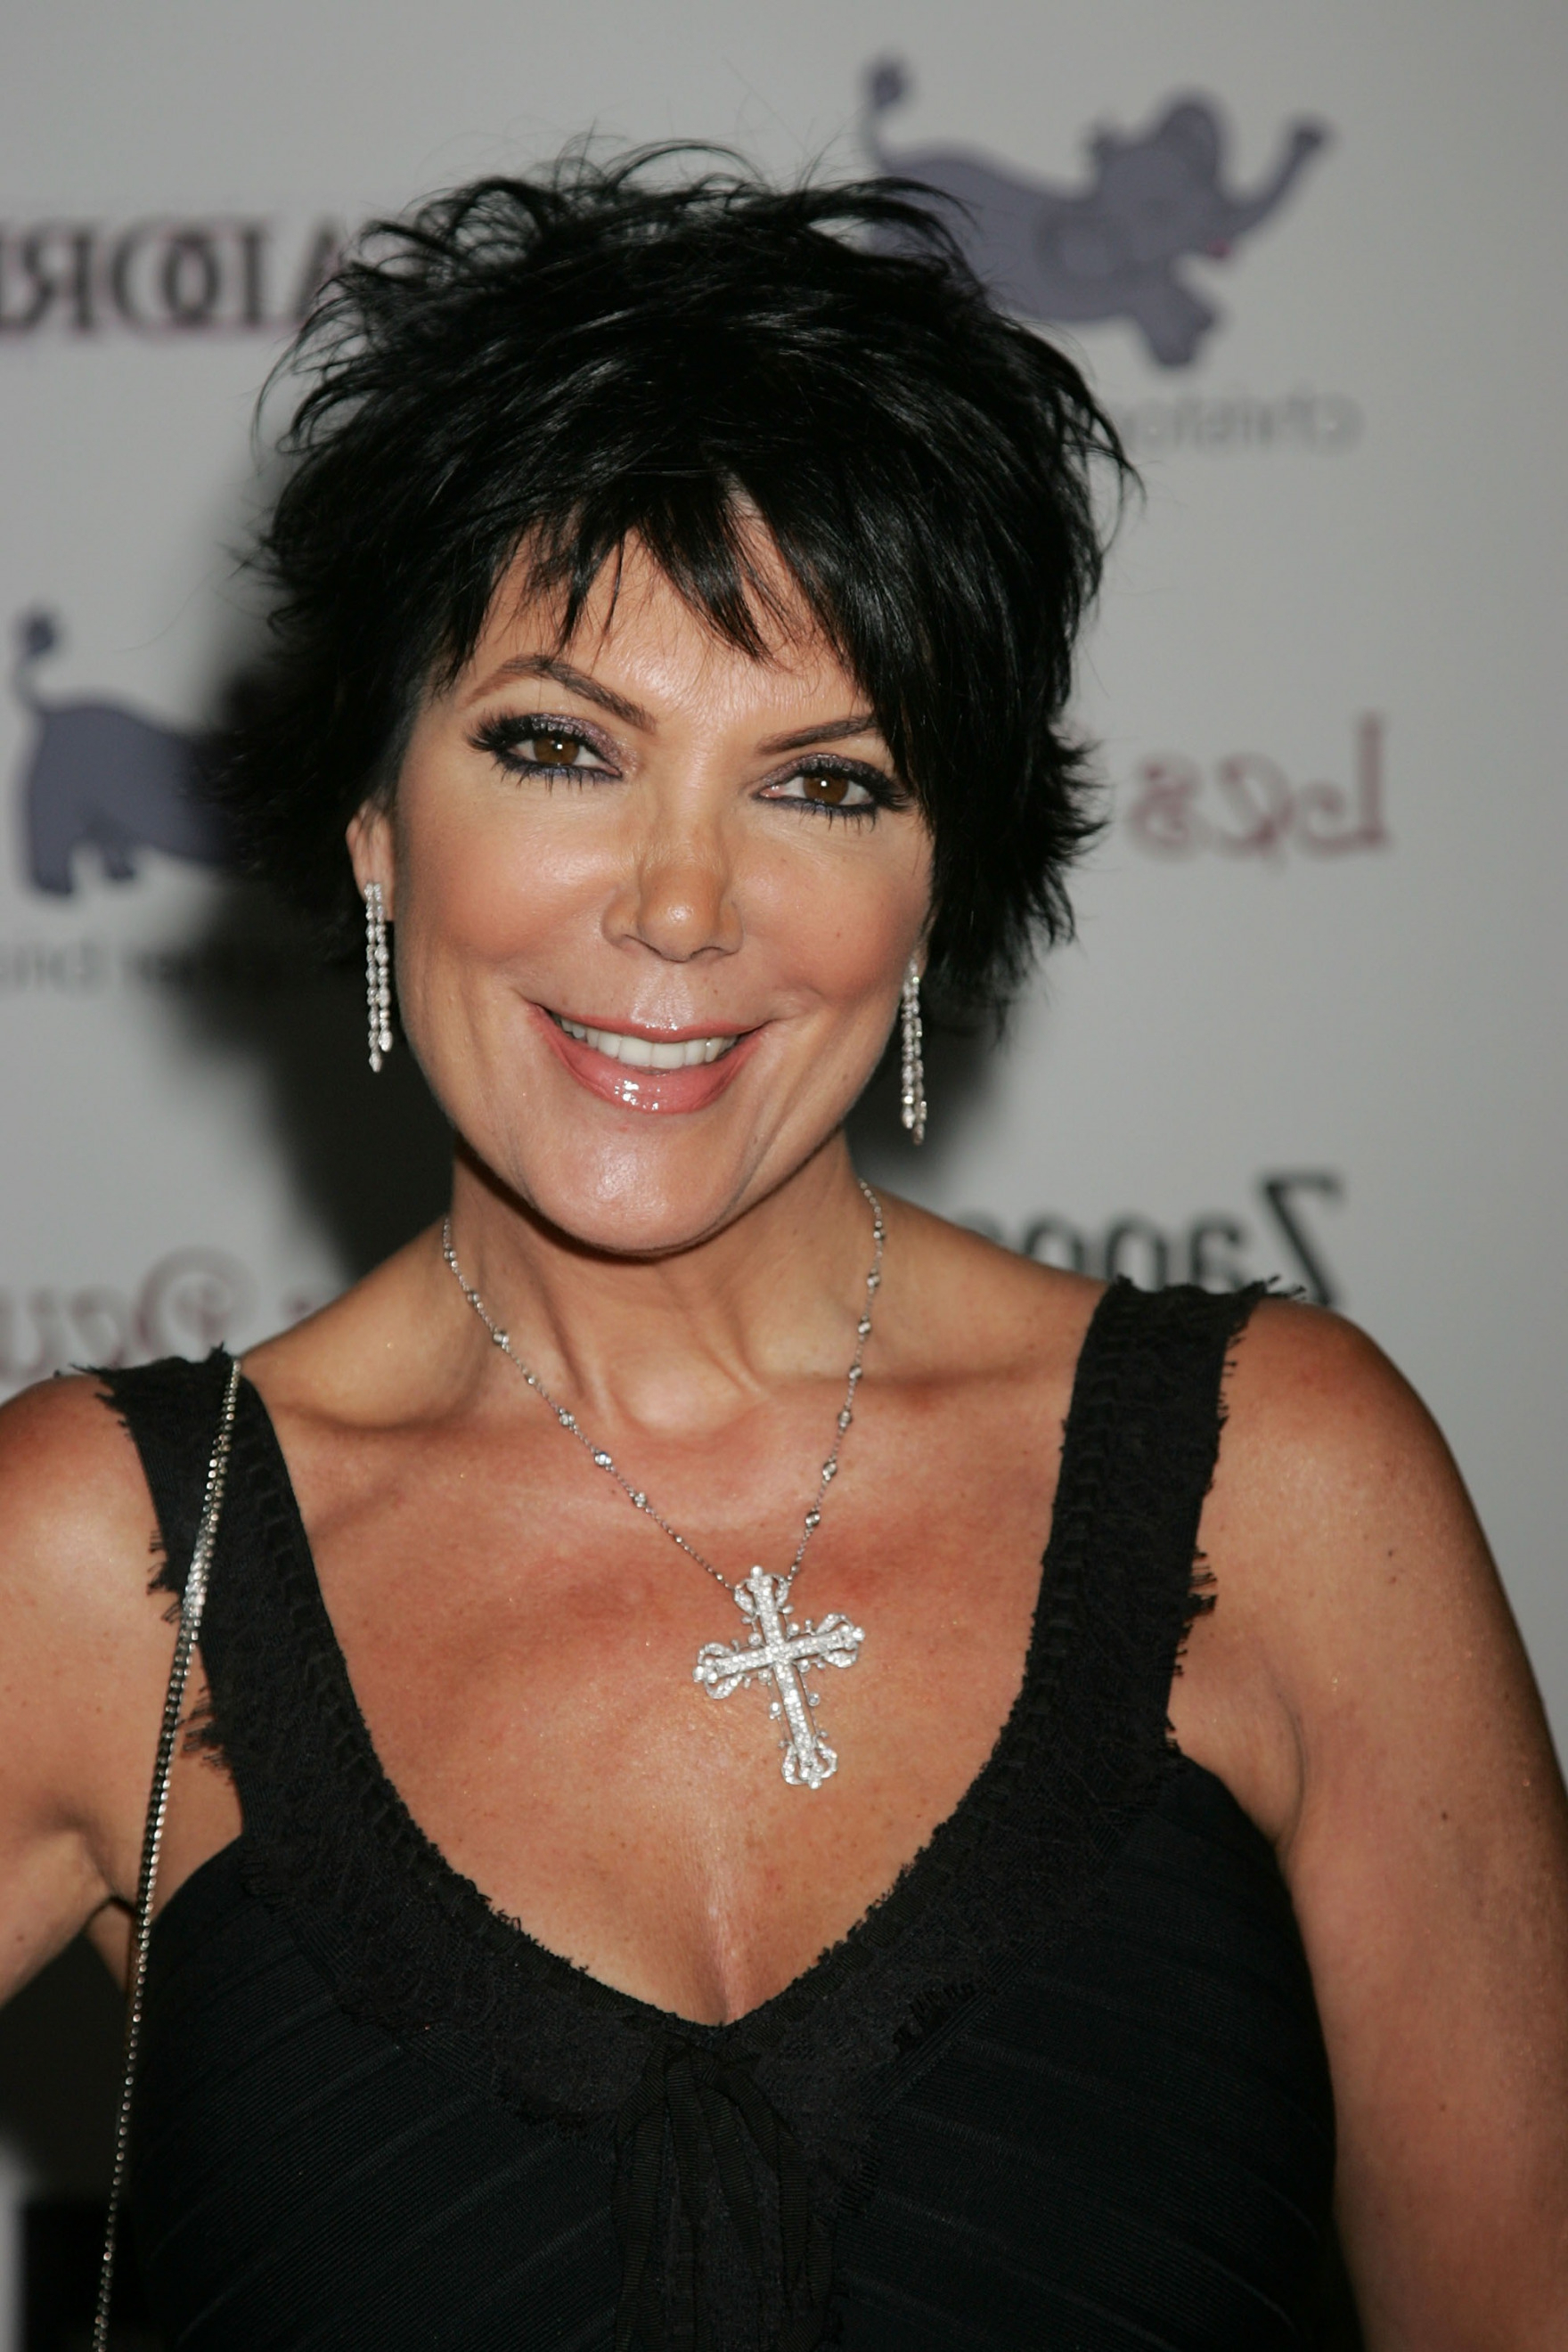 Kris Kardashian Hairstyles | Best Hairstyles And Haircuts For Women Pertaining To Kris Jenner Short Haircuts (View 23 of 25)